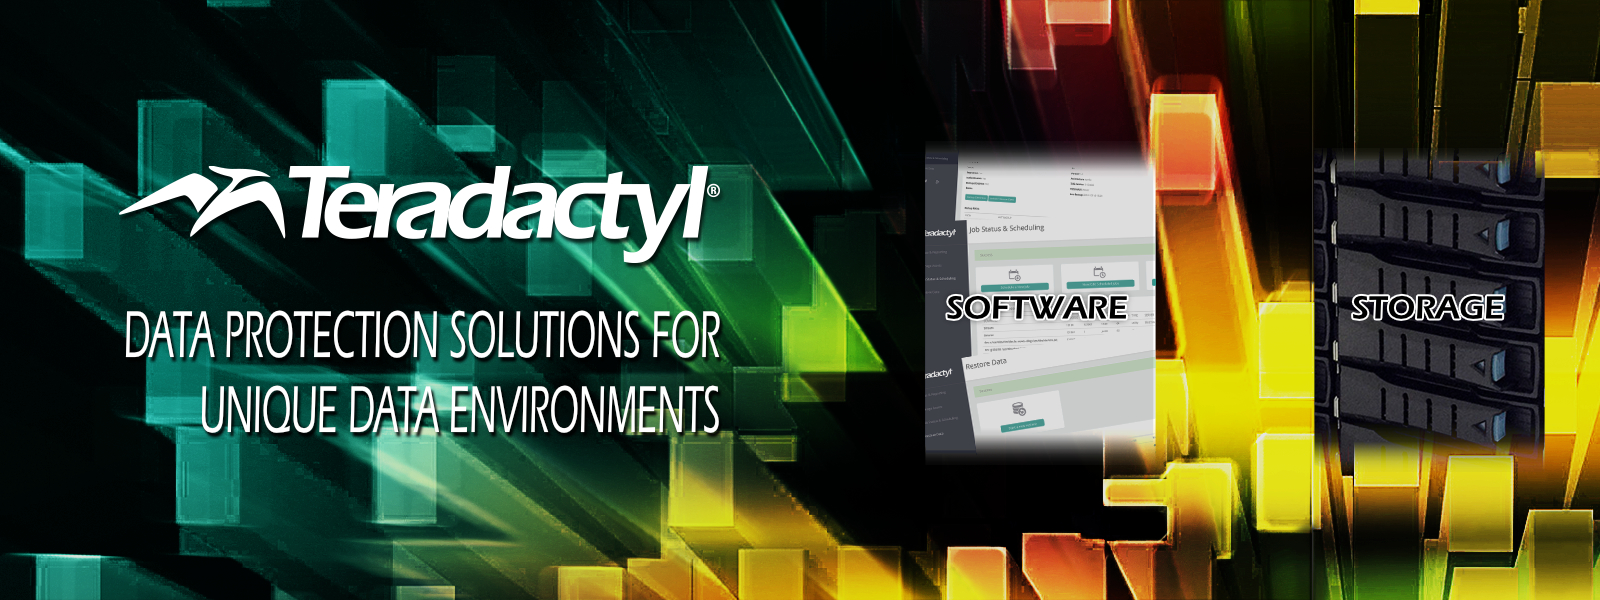 Teradactyl Data Protection Solutions for Unique Data Environments